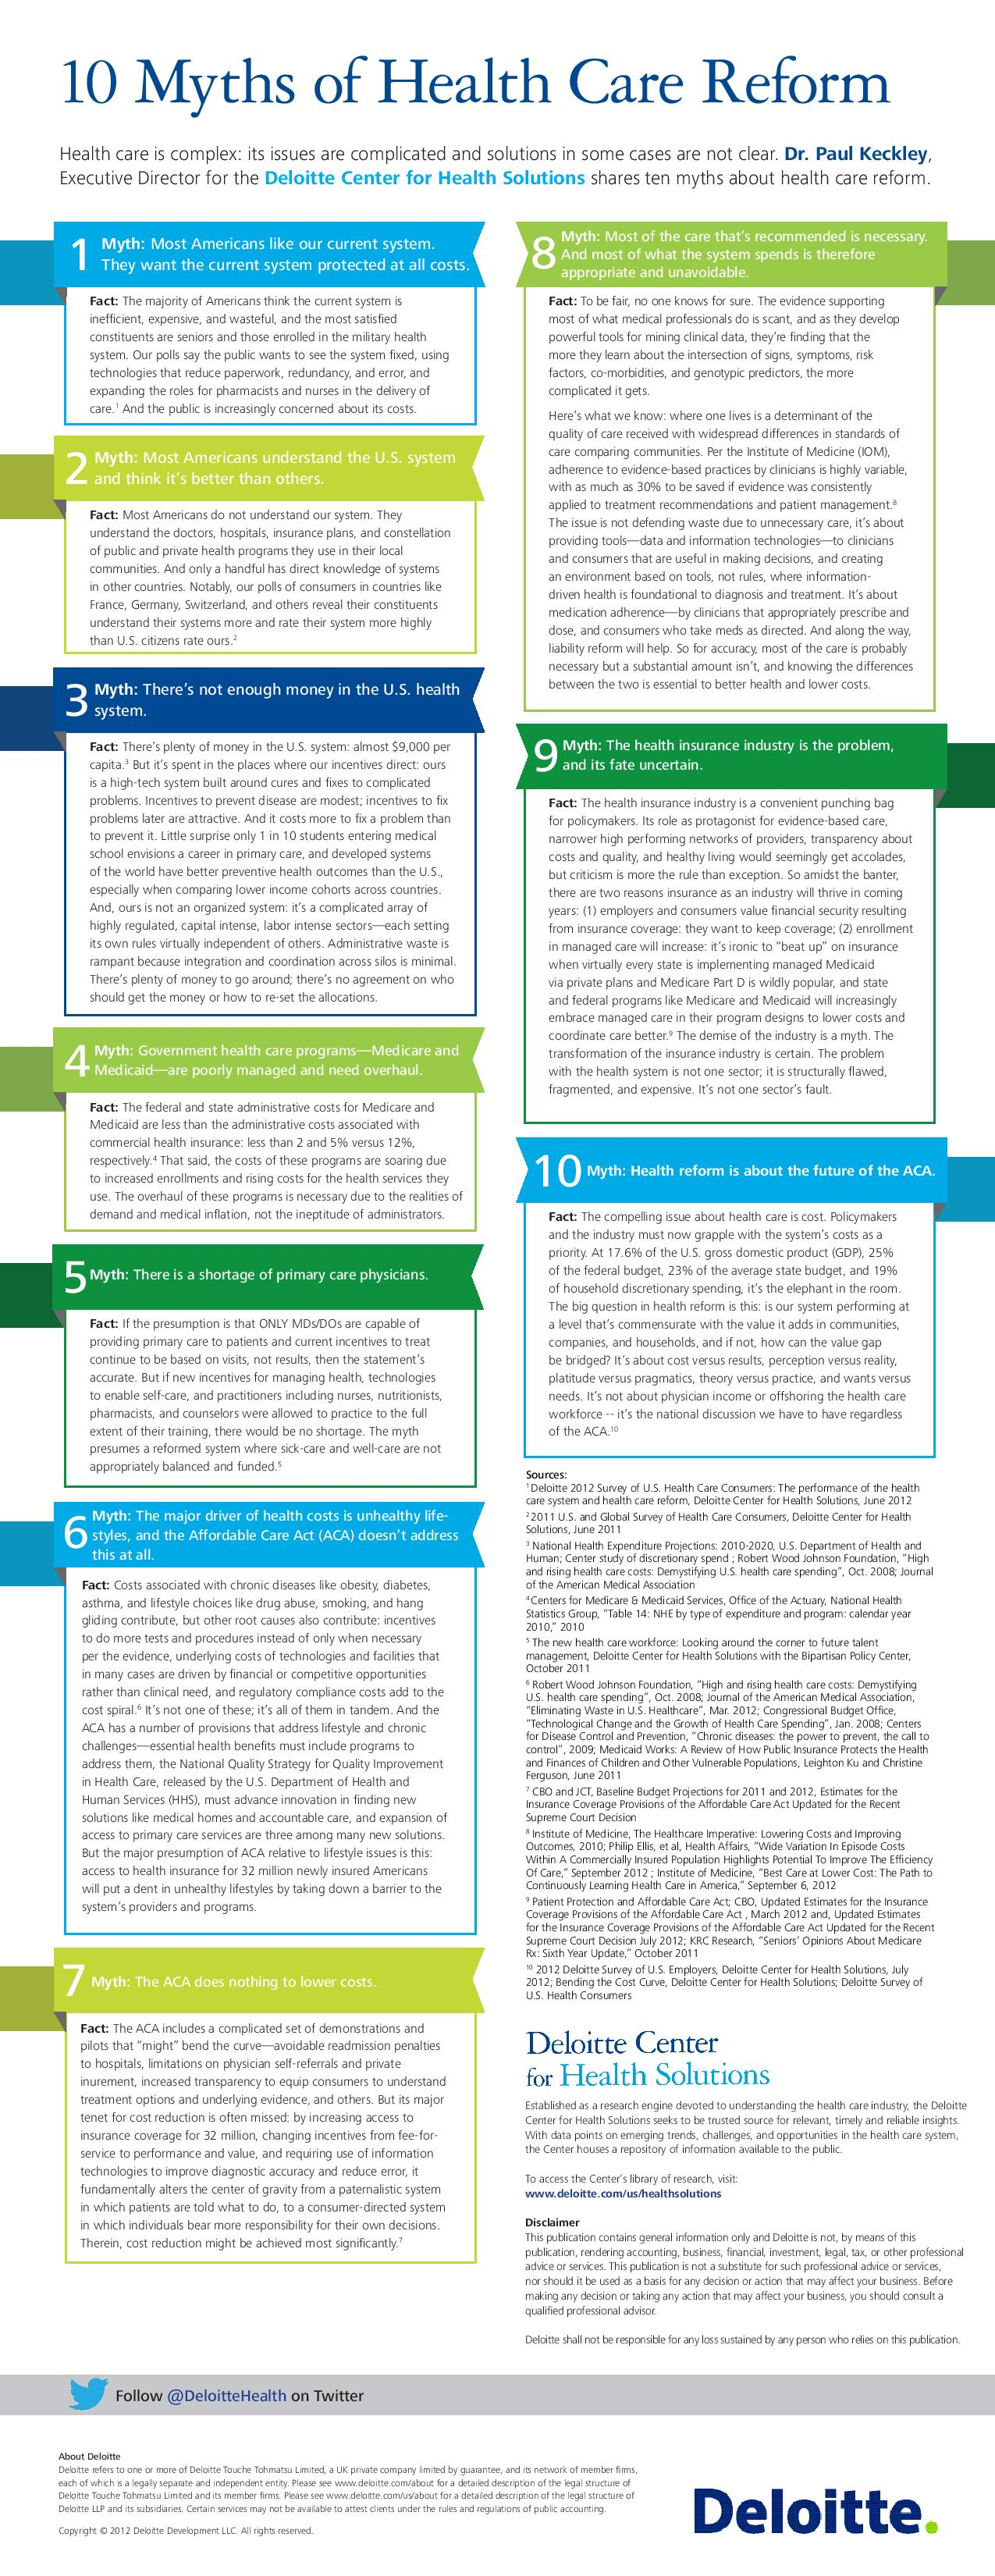 10 Myths of Healthcare Reform Infographic